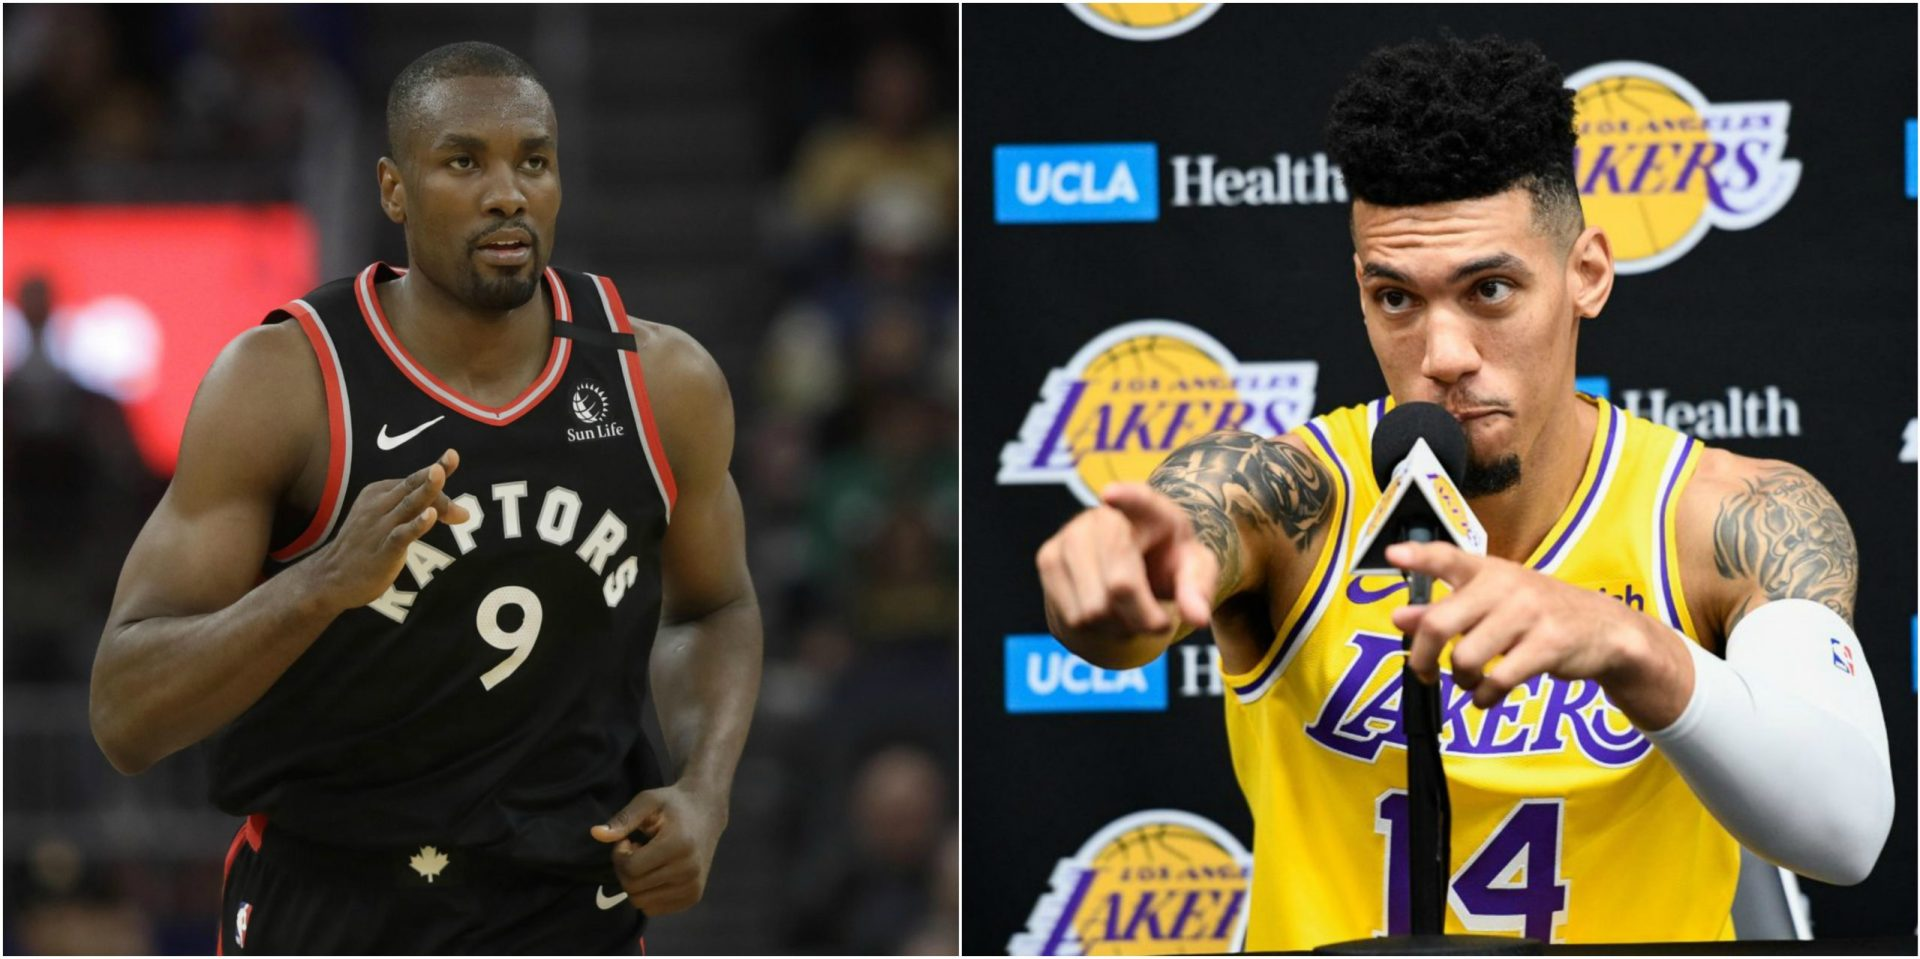 Danny Green has a 'slithering' response to Serge Ibaka's Clippers draft - THE SPORTS ROOM